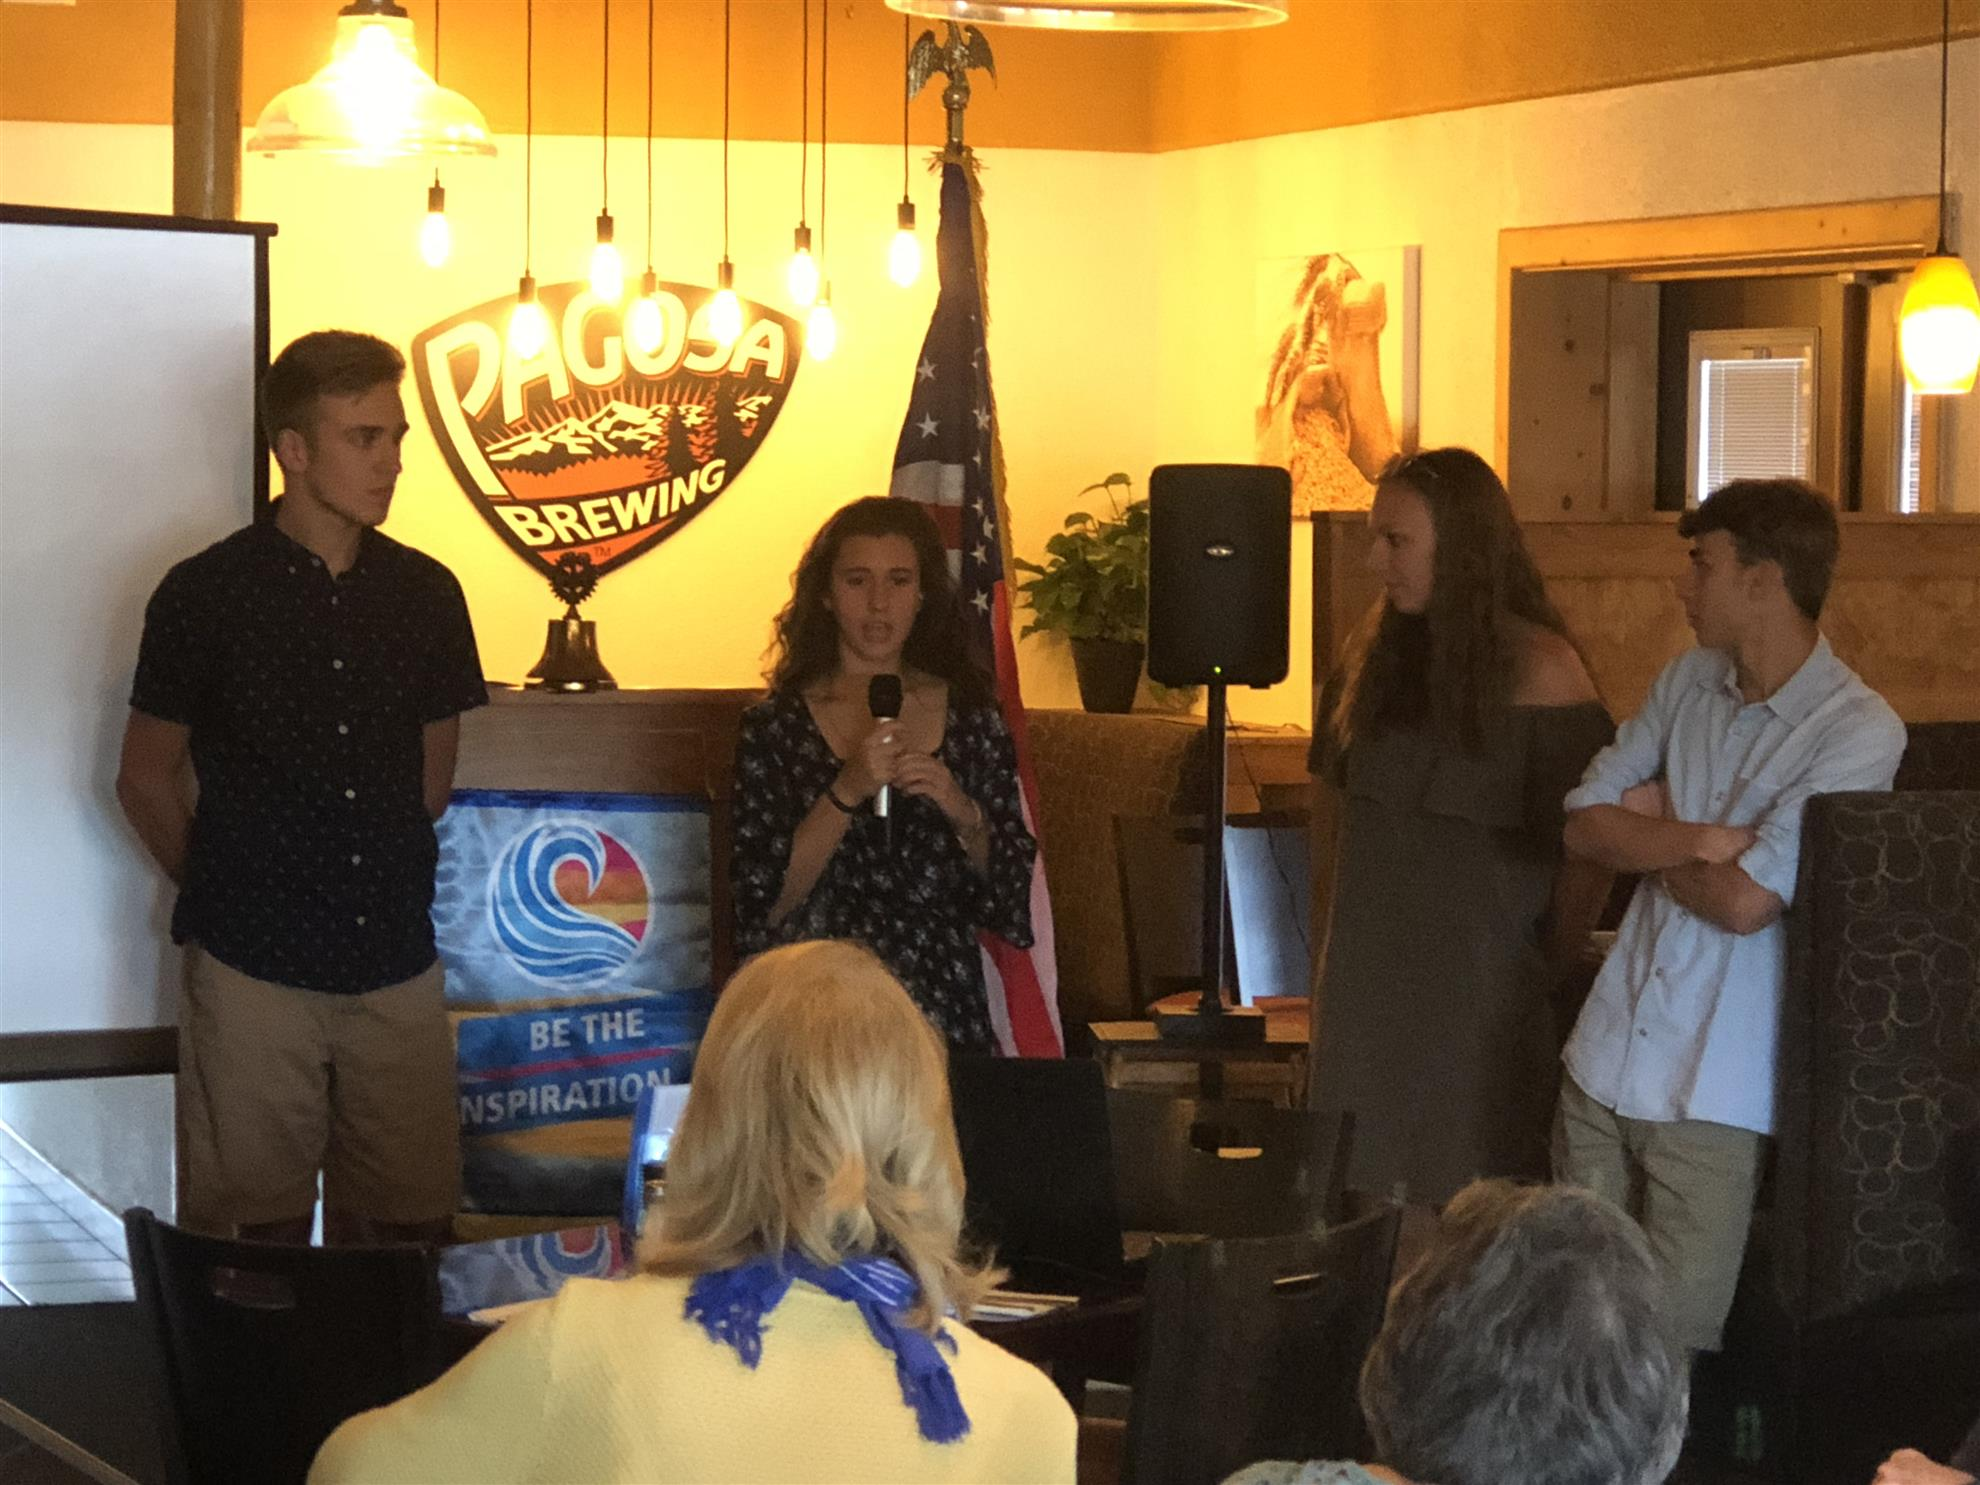 Stories Rotary Club Of Pagosa Springs Short Circuit39s Johnny Five On Auction Block Starting At 100000 Lisa Scott Introduced Some Very Special Guests The Pairs Students Participating Locally In Rotarys Term Summer Exchange Program